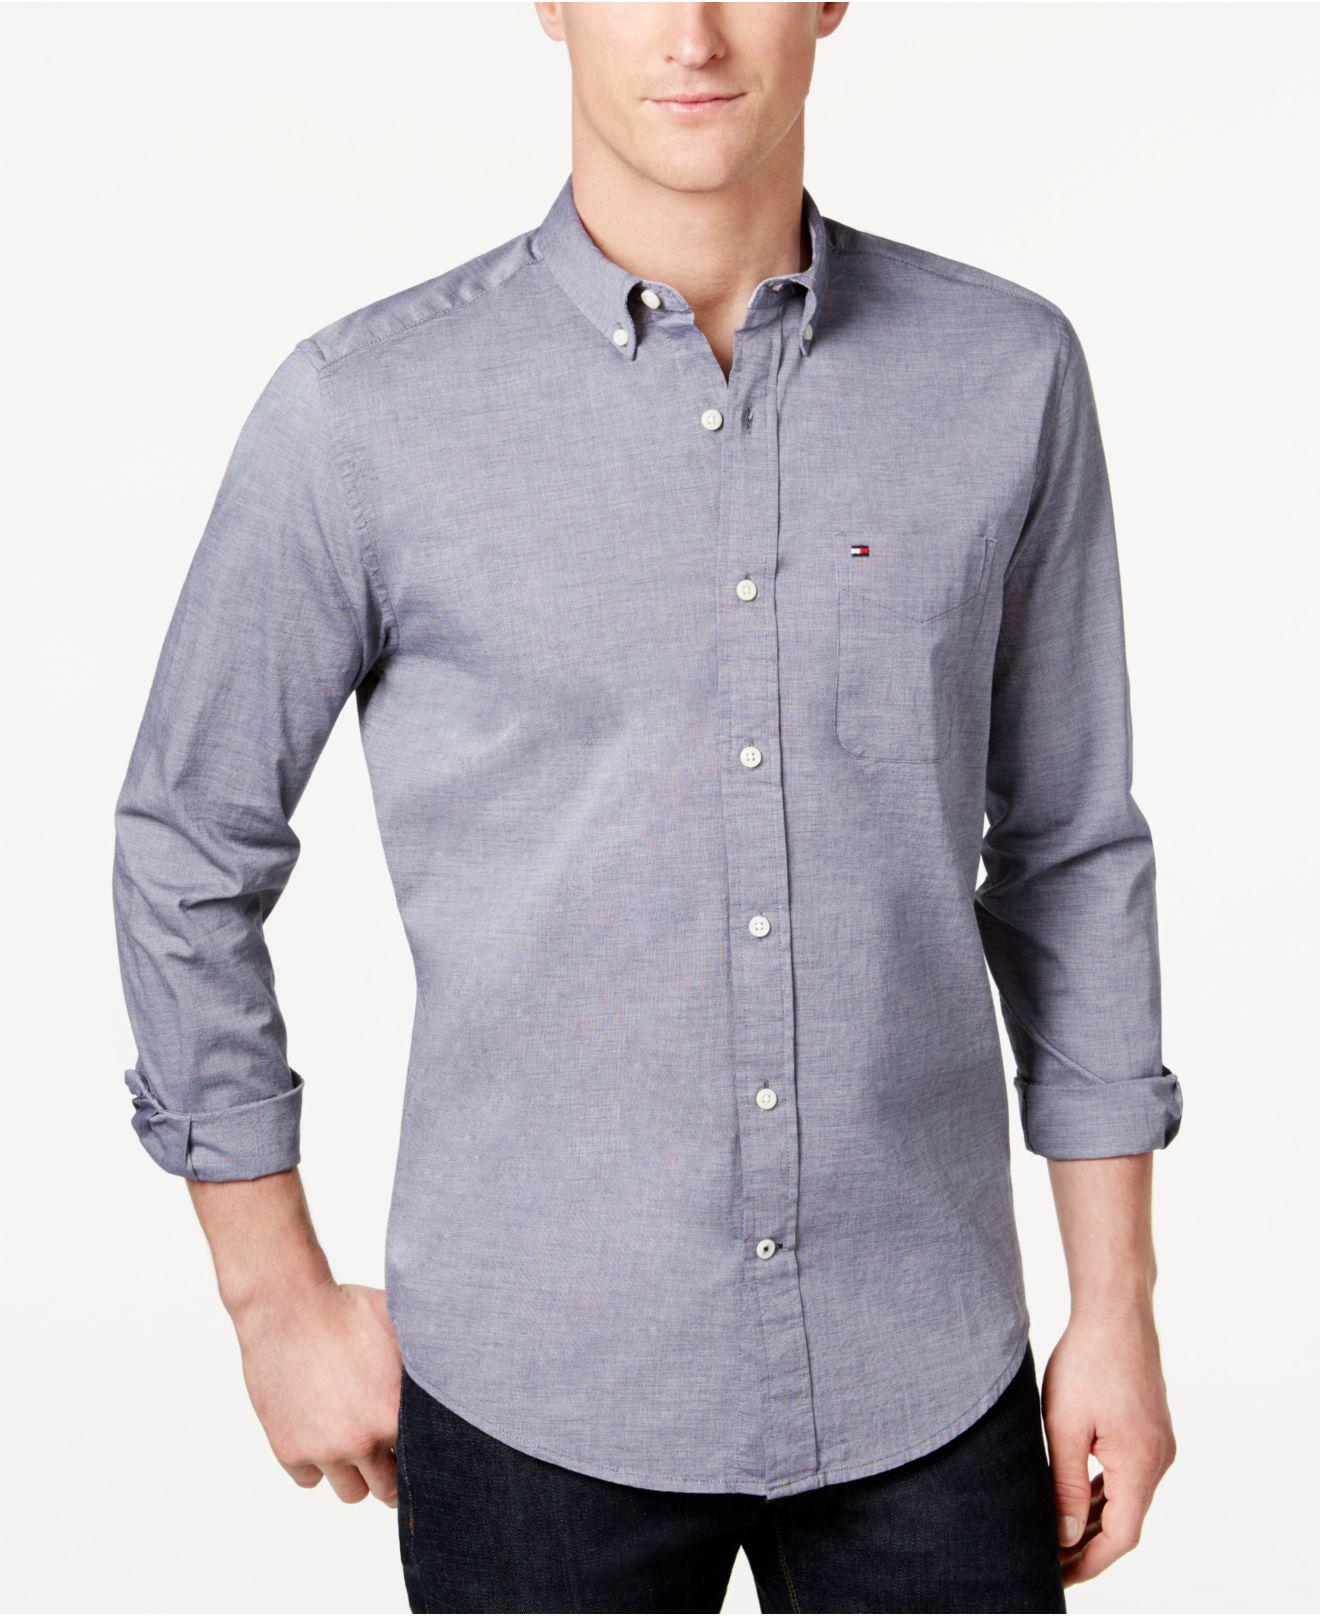 1e4afecb83cb Lyst - Tommy Hilfiger Big   Tall Capote Shirt in Blue for Men - Save 67%